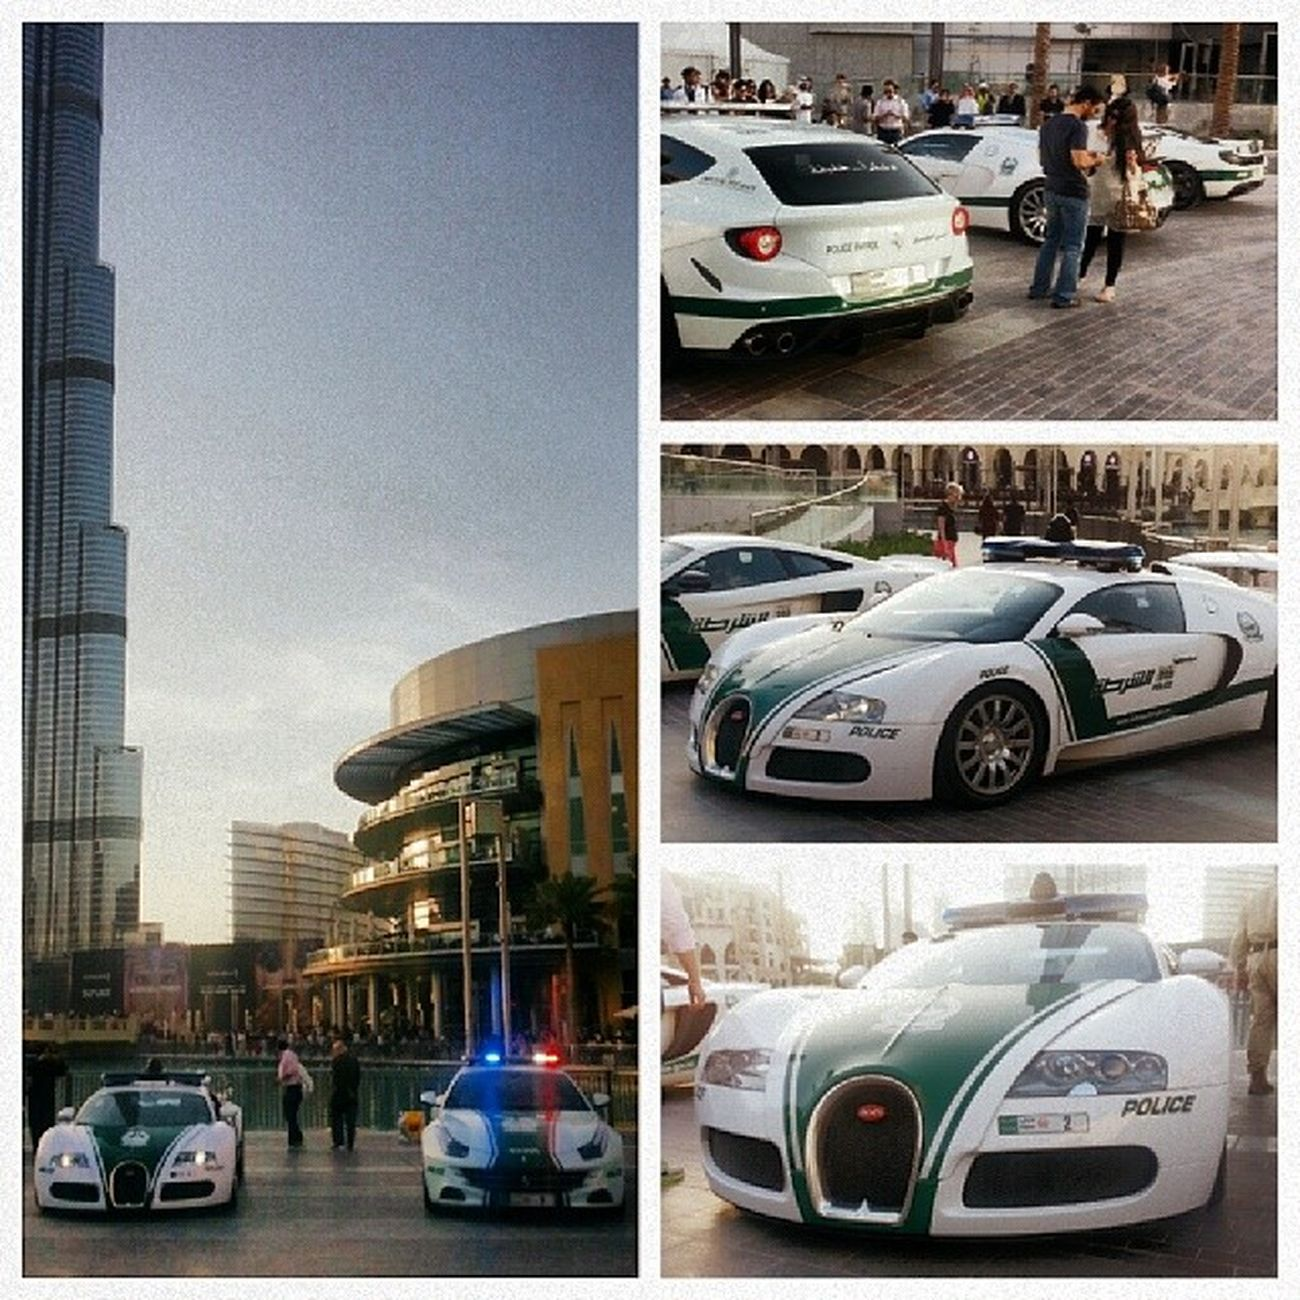 Very Sexy for a car enthusiast like me Needforspeed HotPursuit  Dubai CheatCodesToUnlockTheBug Bugatti Veyron Ferrari FF McLaren MP4-12C